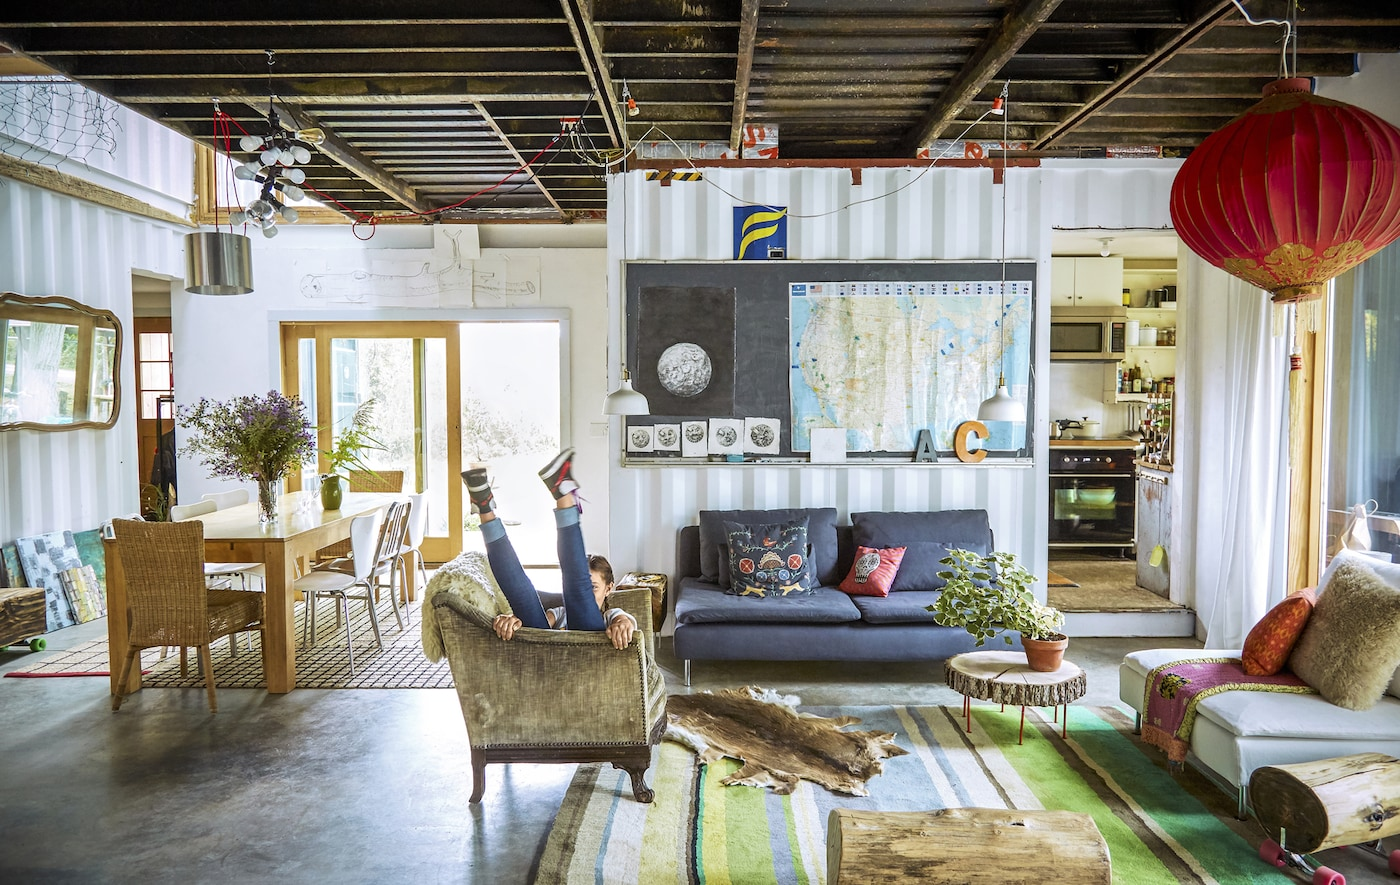 A living room inside a shipping container.